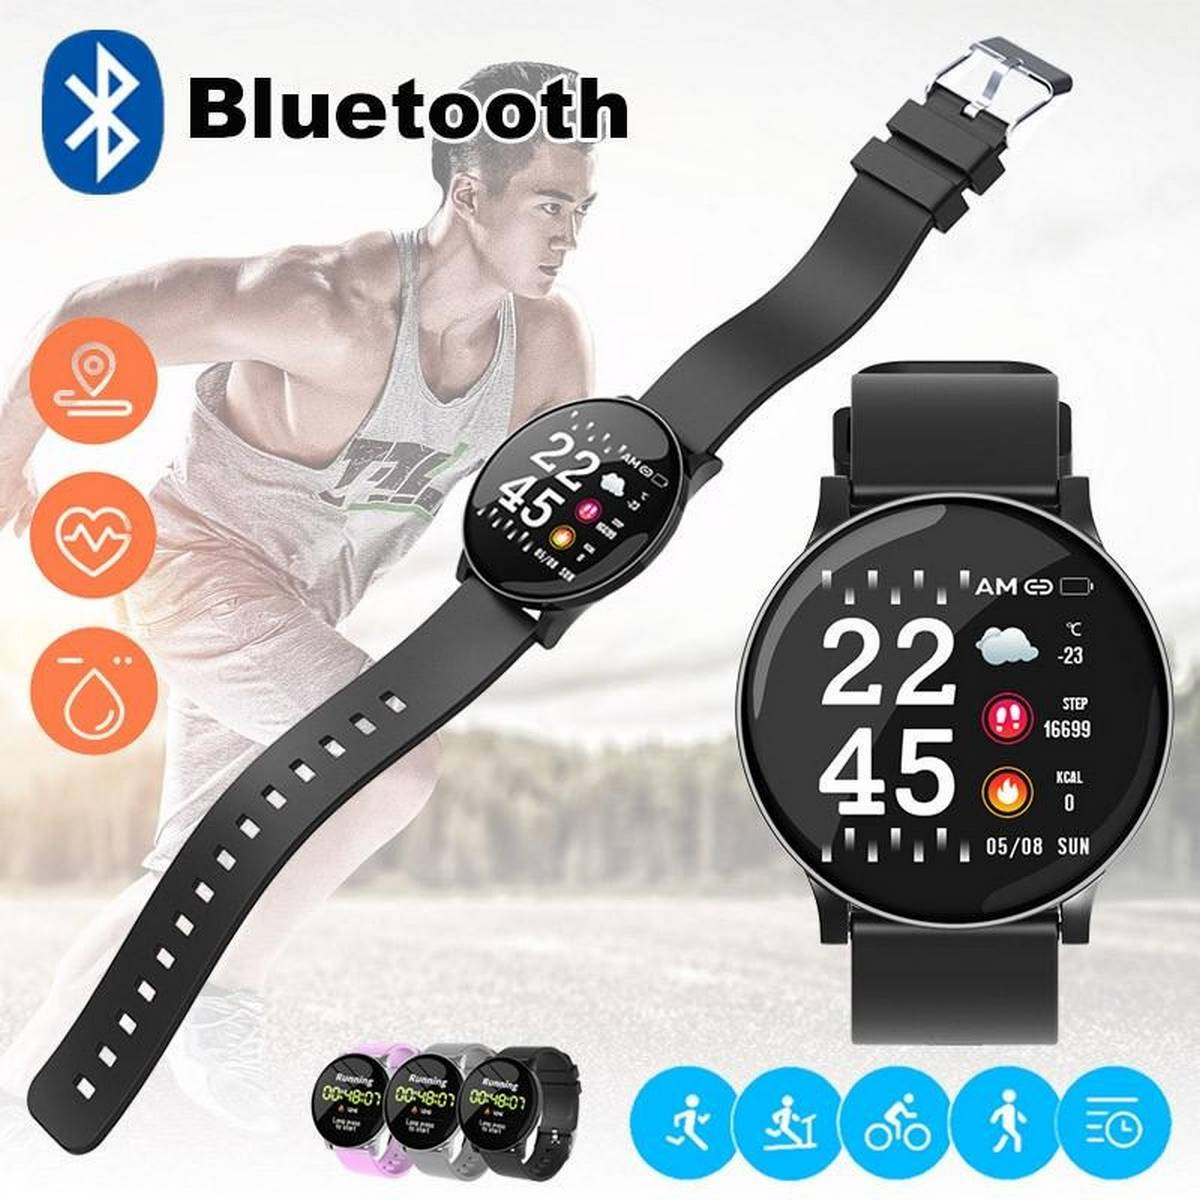 D18 Fitness Tracker Smart Watch Band IP65 Waterproof Bluetooth Sport Intelligent Wrist For Call Reminder Motion Detection Device For Xiaomi,Apple,,OPPO,Samsung,Huawei,Redmi